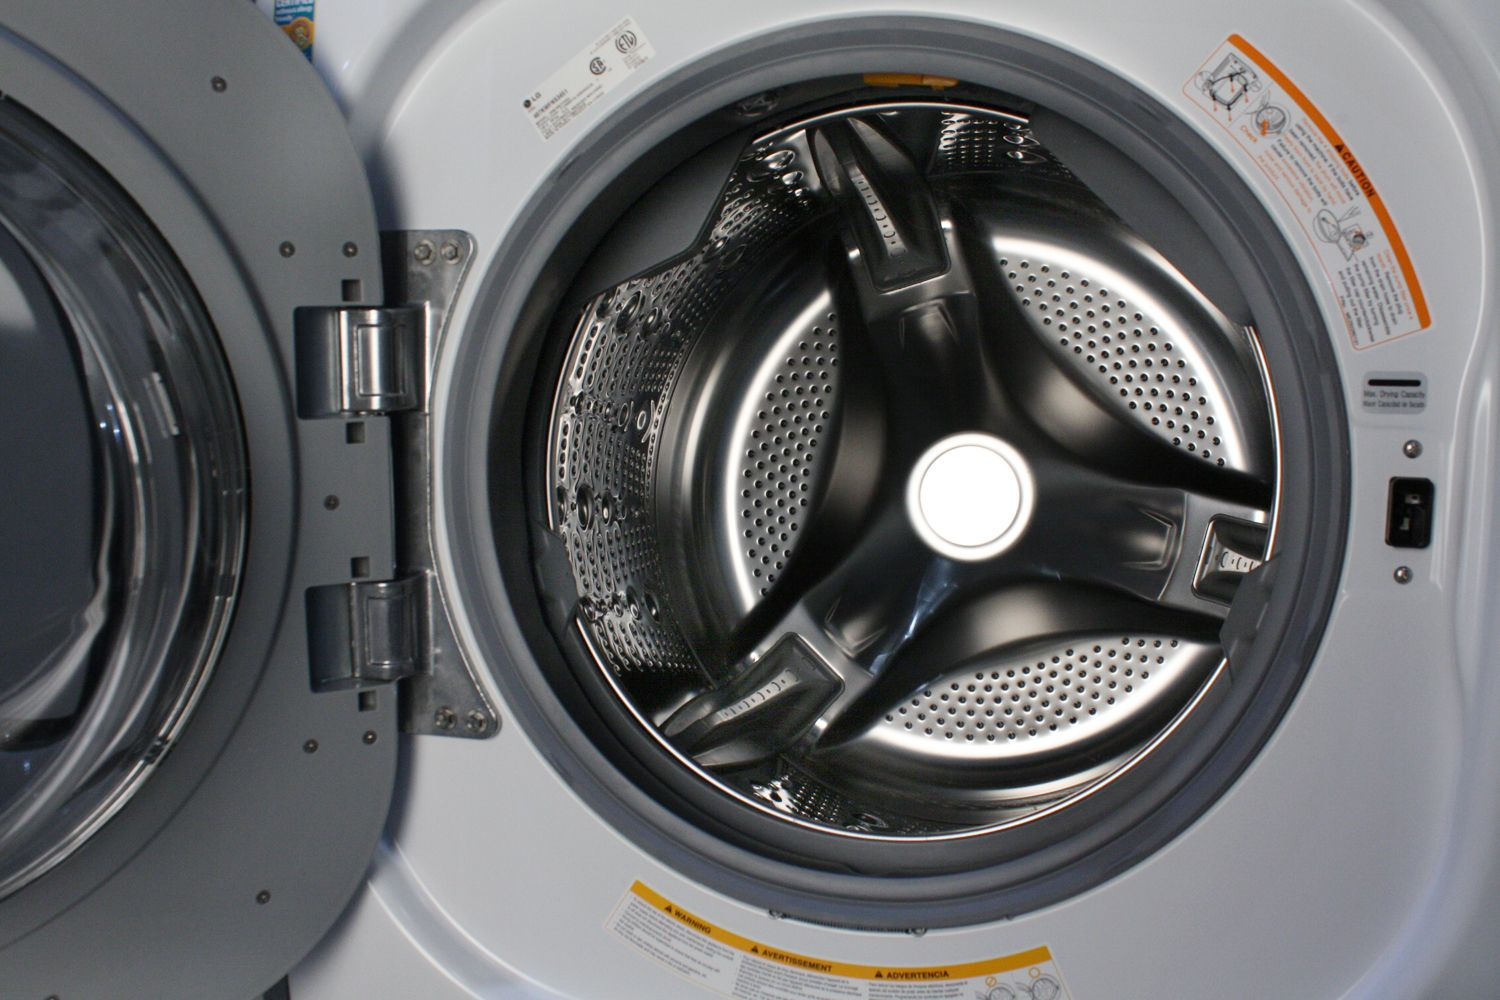 Lg 2 3 cu ft all in one washer and dryer - Lg Wm3997hwa Washer Dryer Combo Units Main Image 1 2 Interior